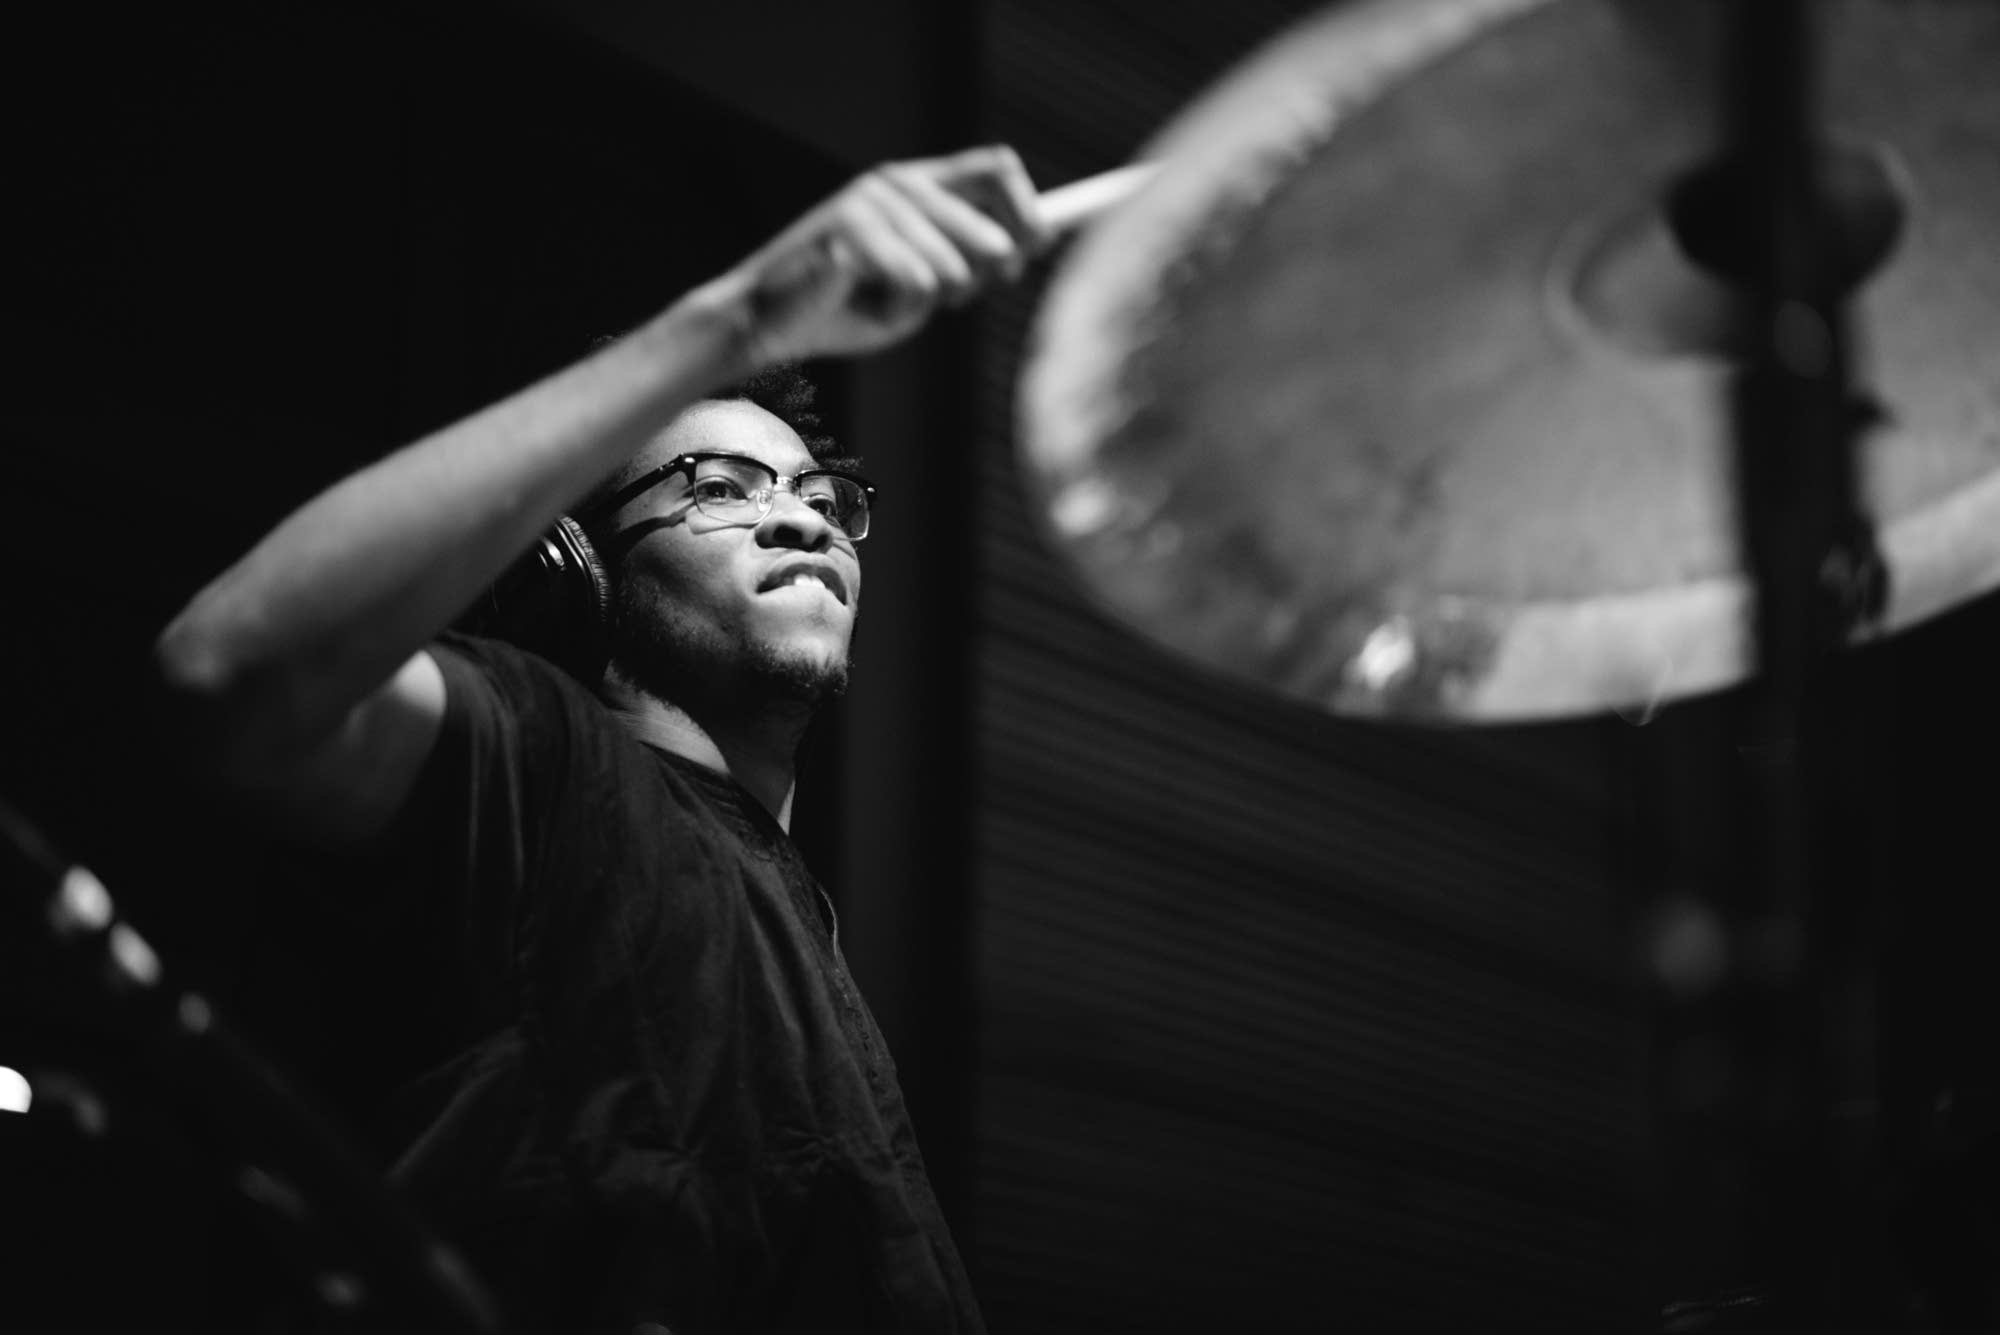 L.A. Buckner drums for Thomas Abban in The Current's studio